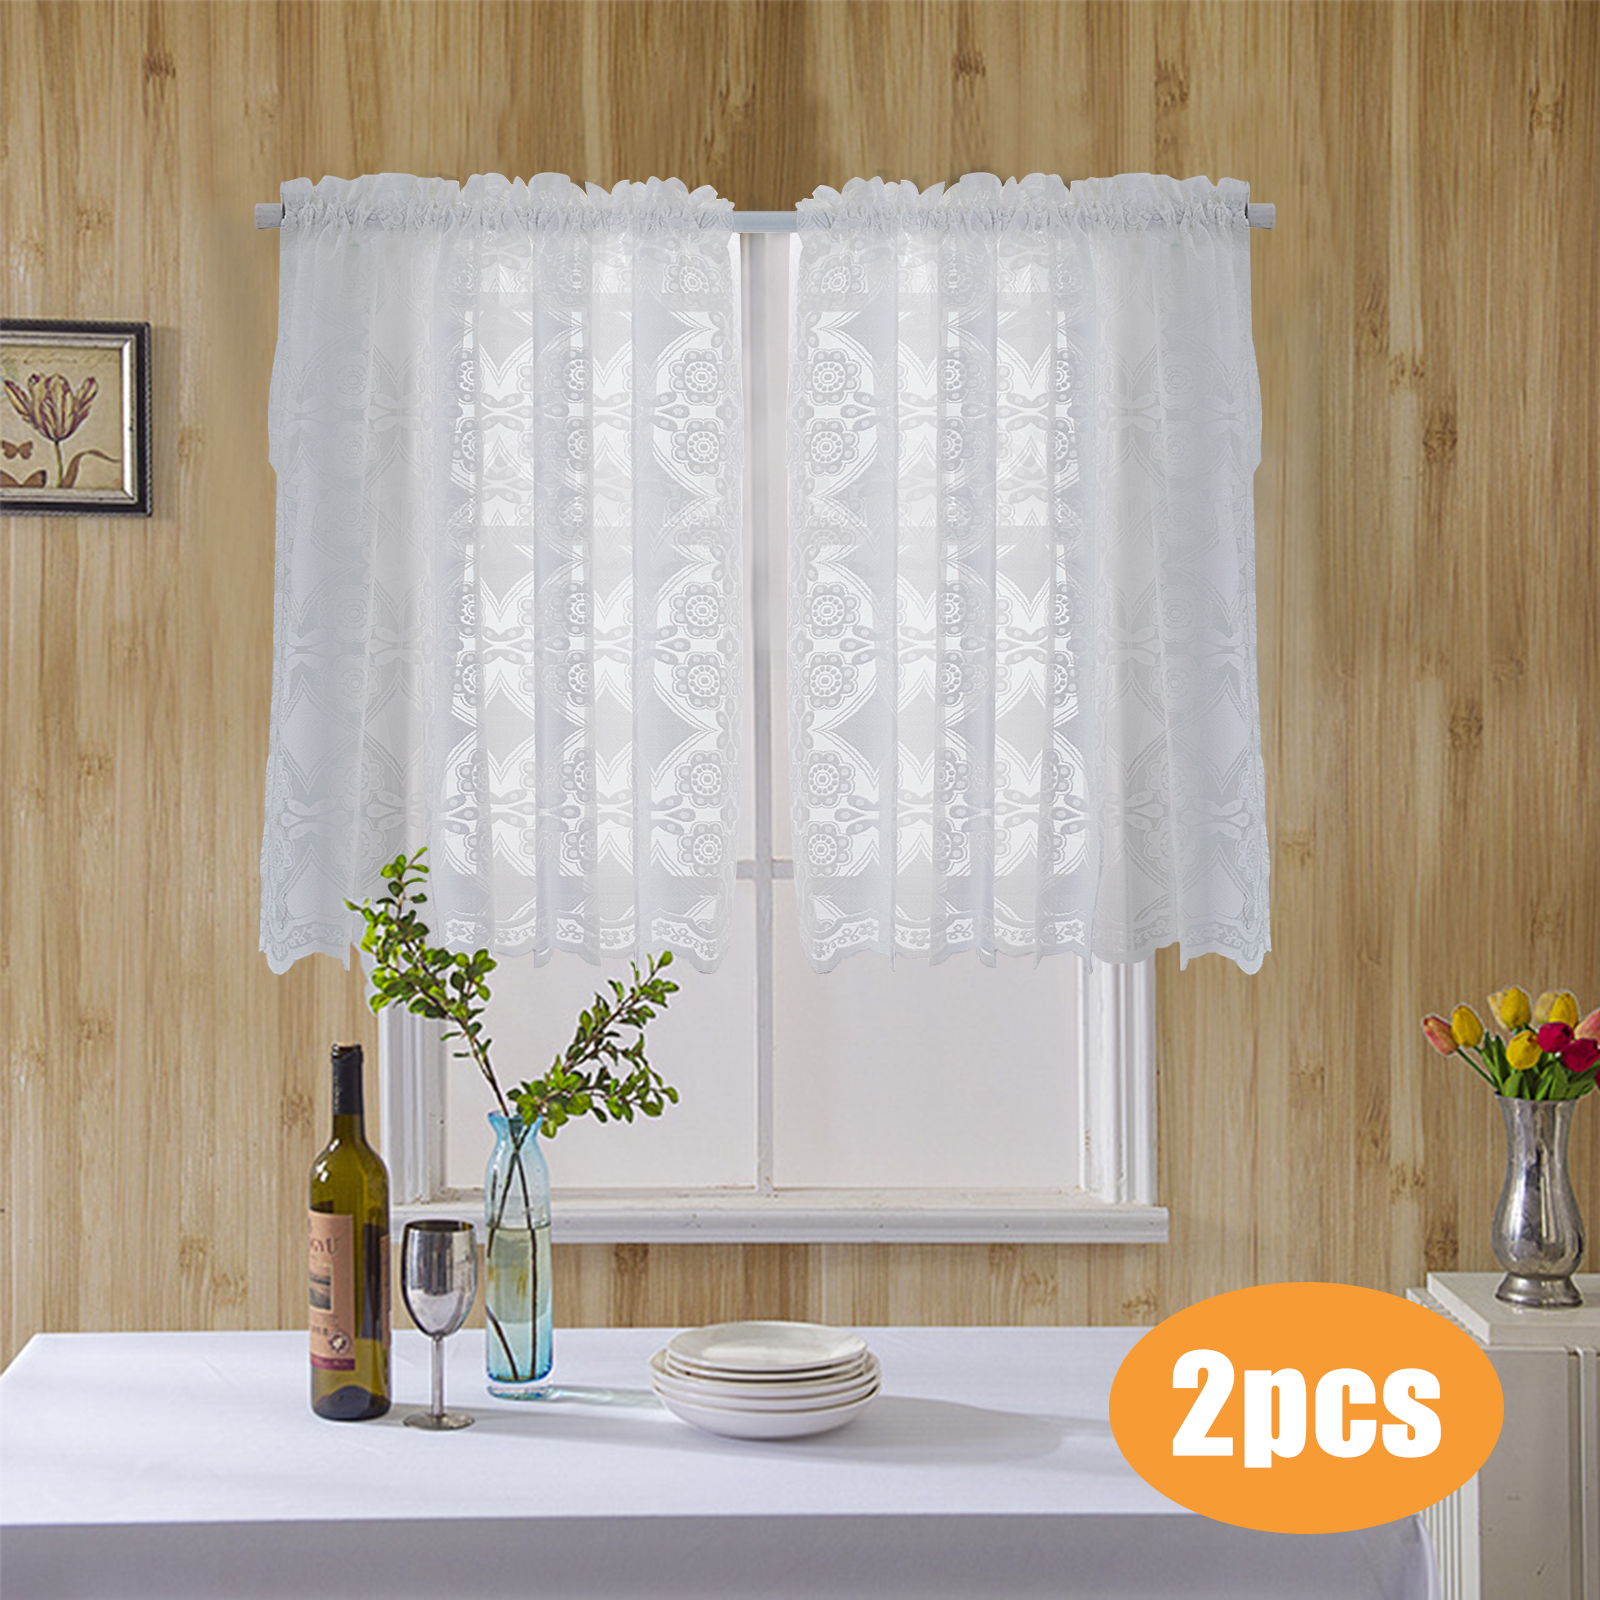 Window Curtain Checked Sheer Voile Kitchen Curtain Cafe Lace